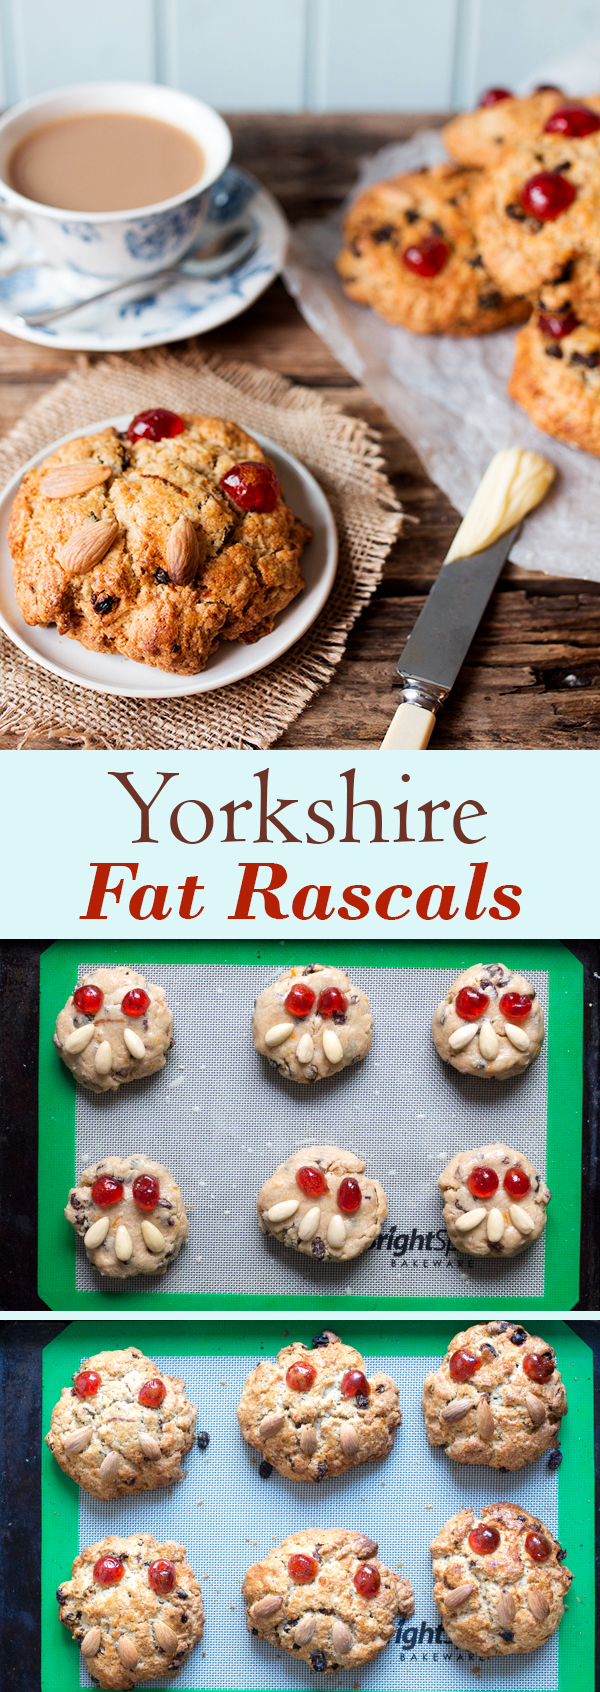 yorkshire fat rascals pin